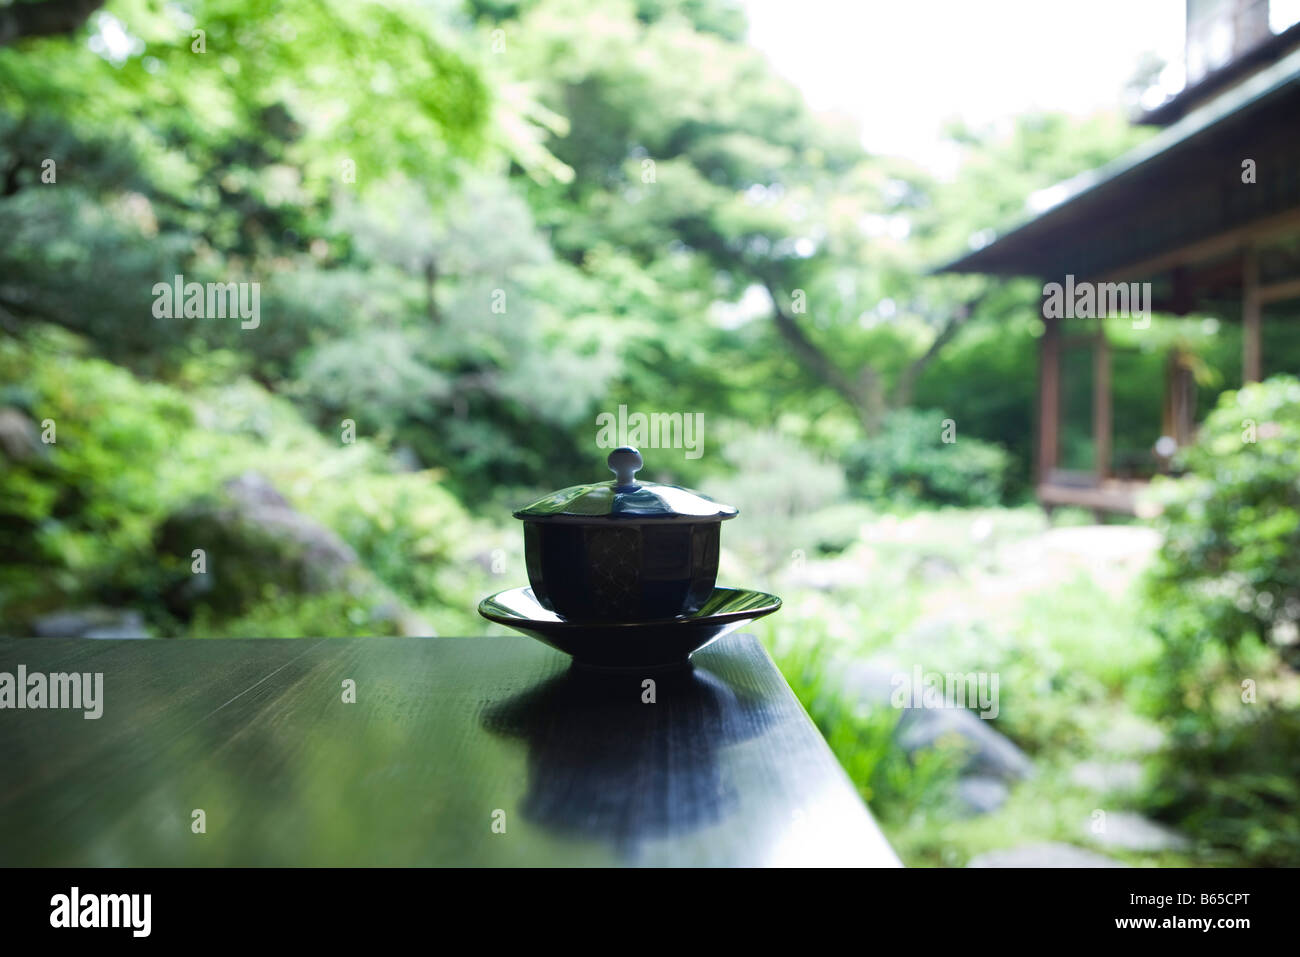 Covered tea cup and saucer on table, Japanese garden in background - Stock Image